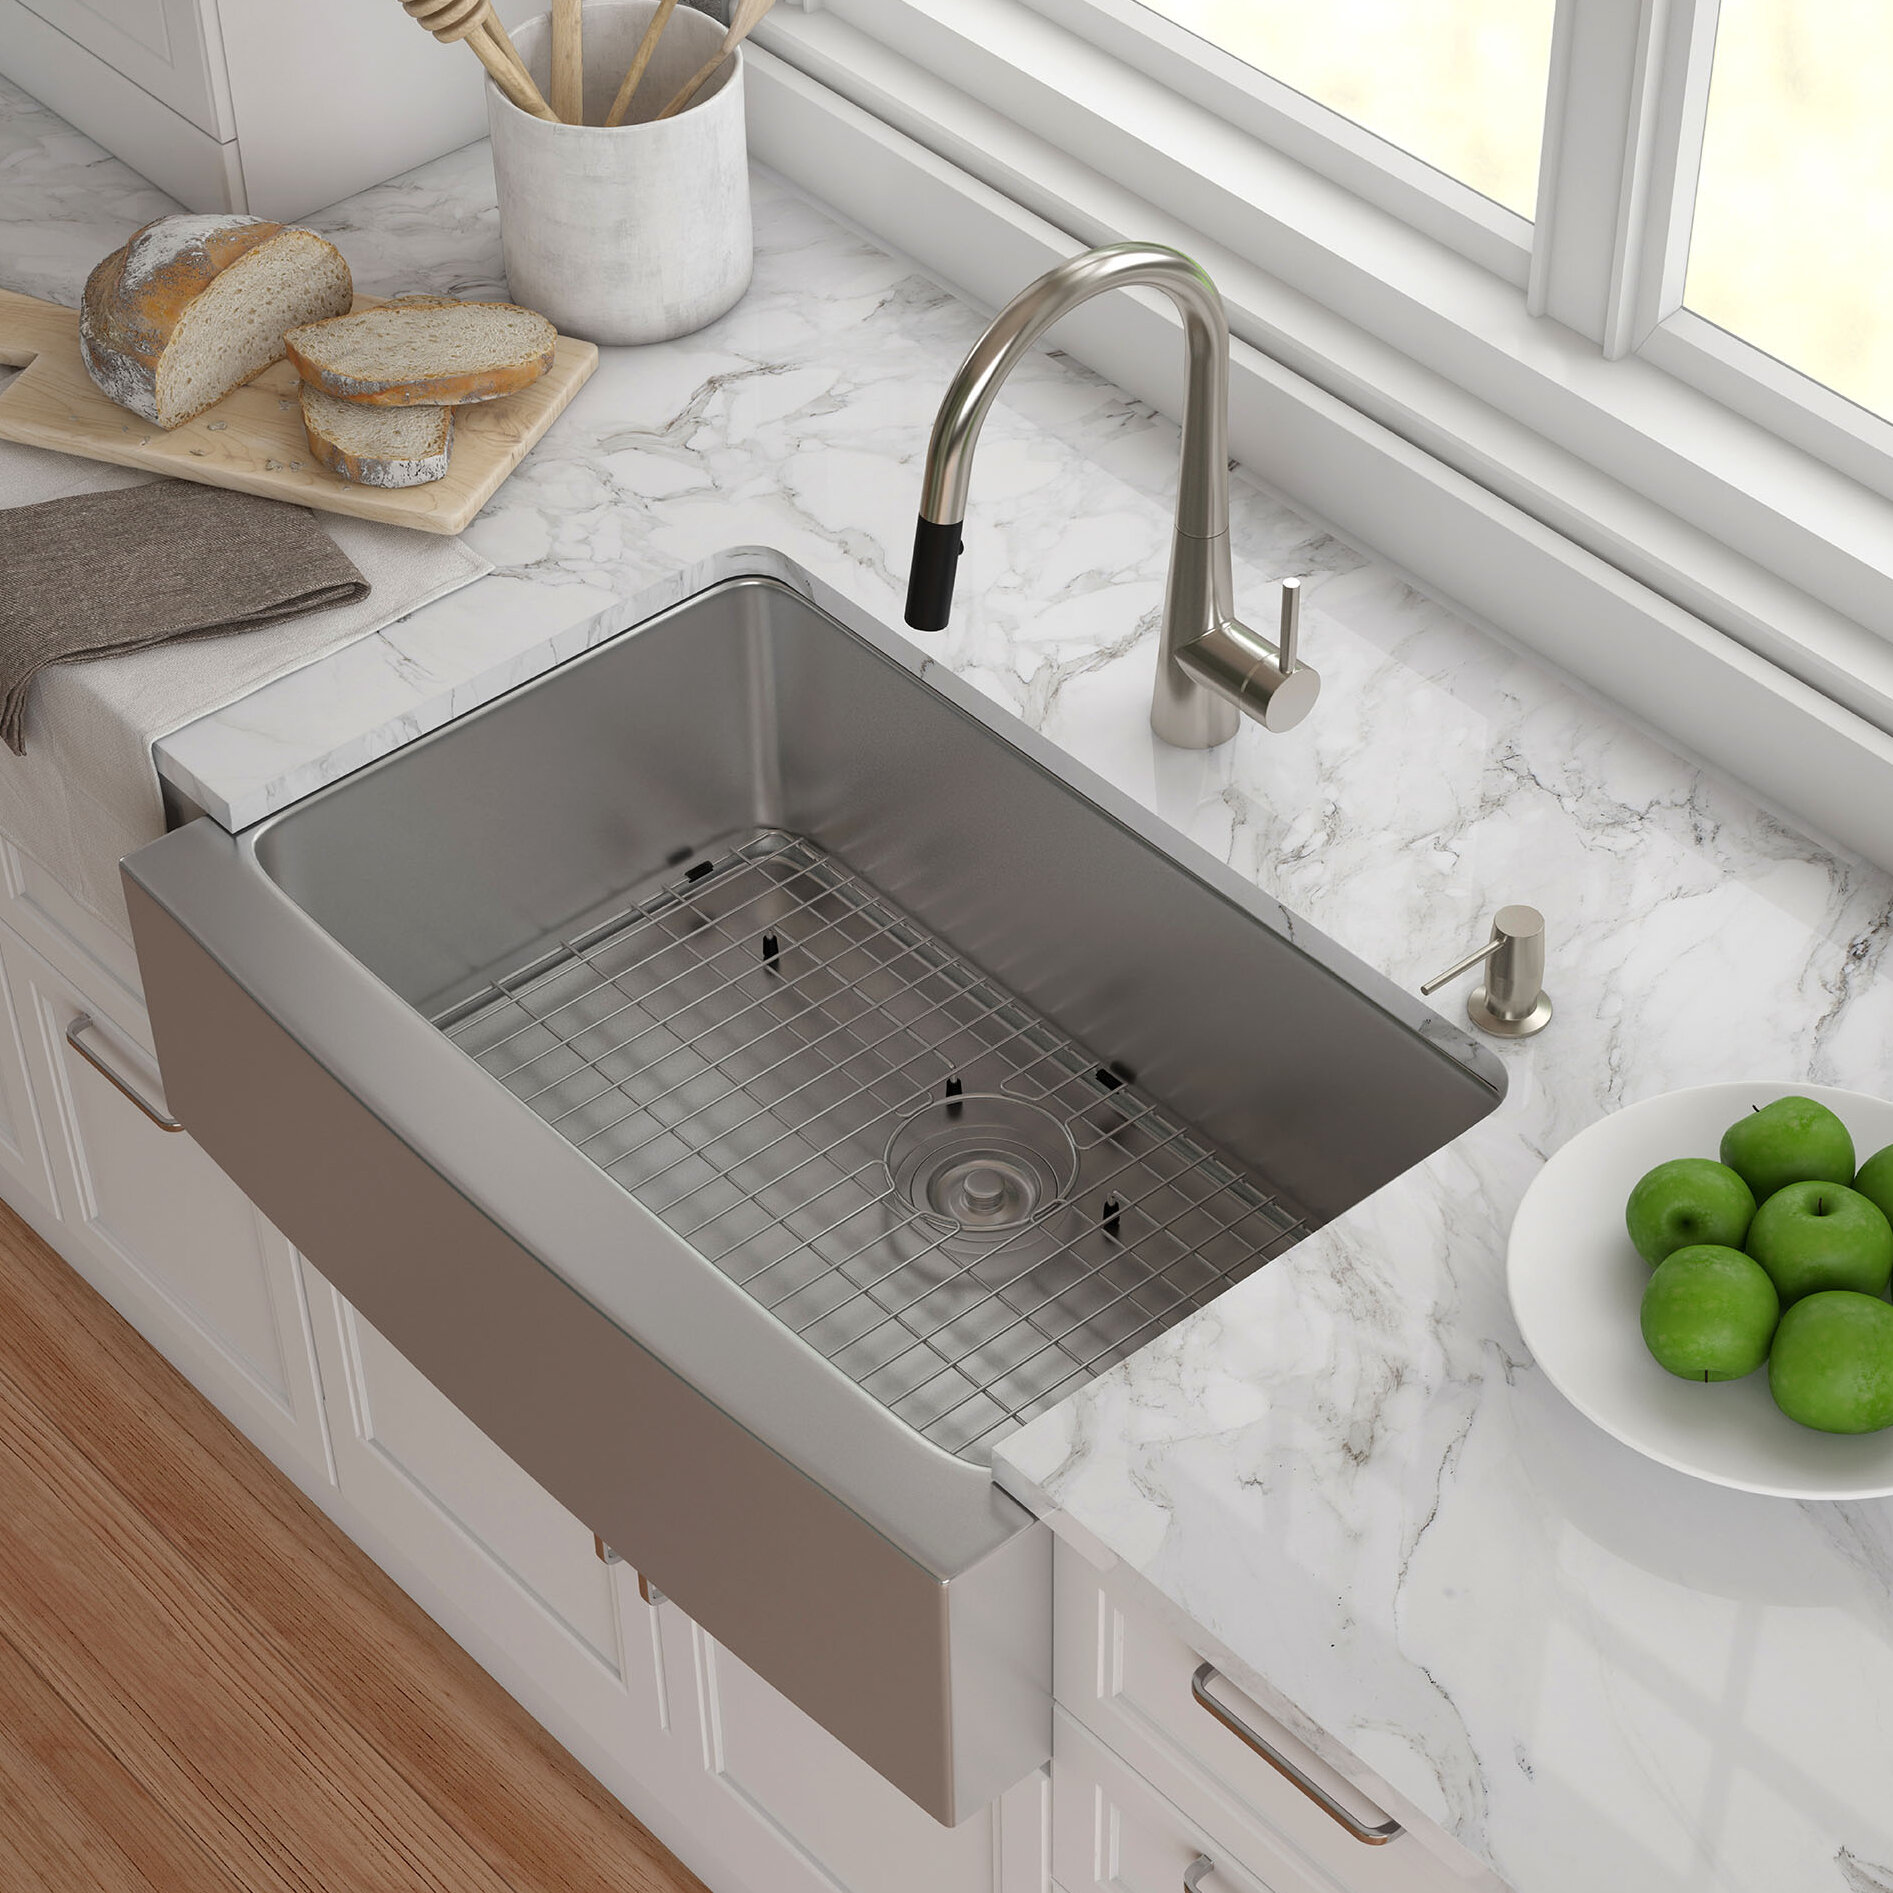 "30"" x 21"" Farmhouse Kitchen Sink with Drain Assembly & Reviews"